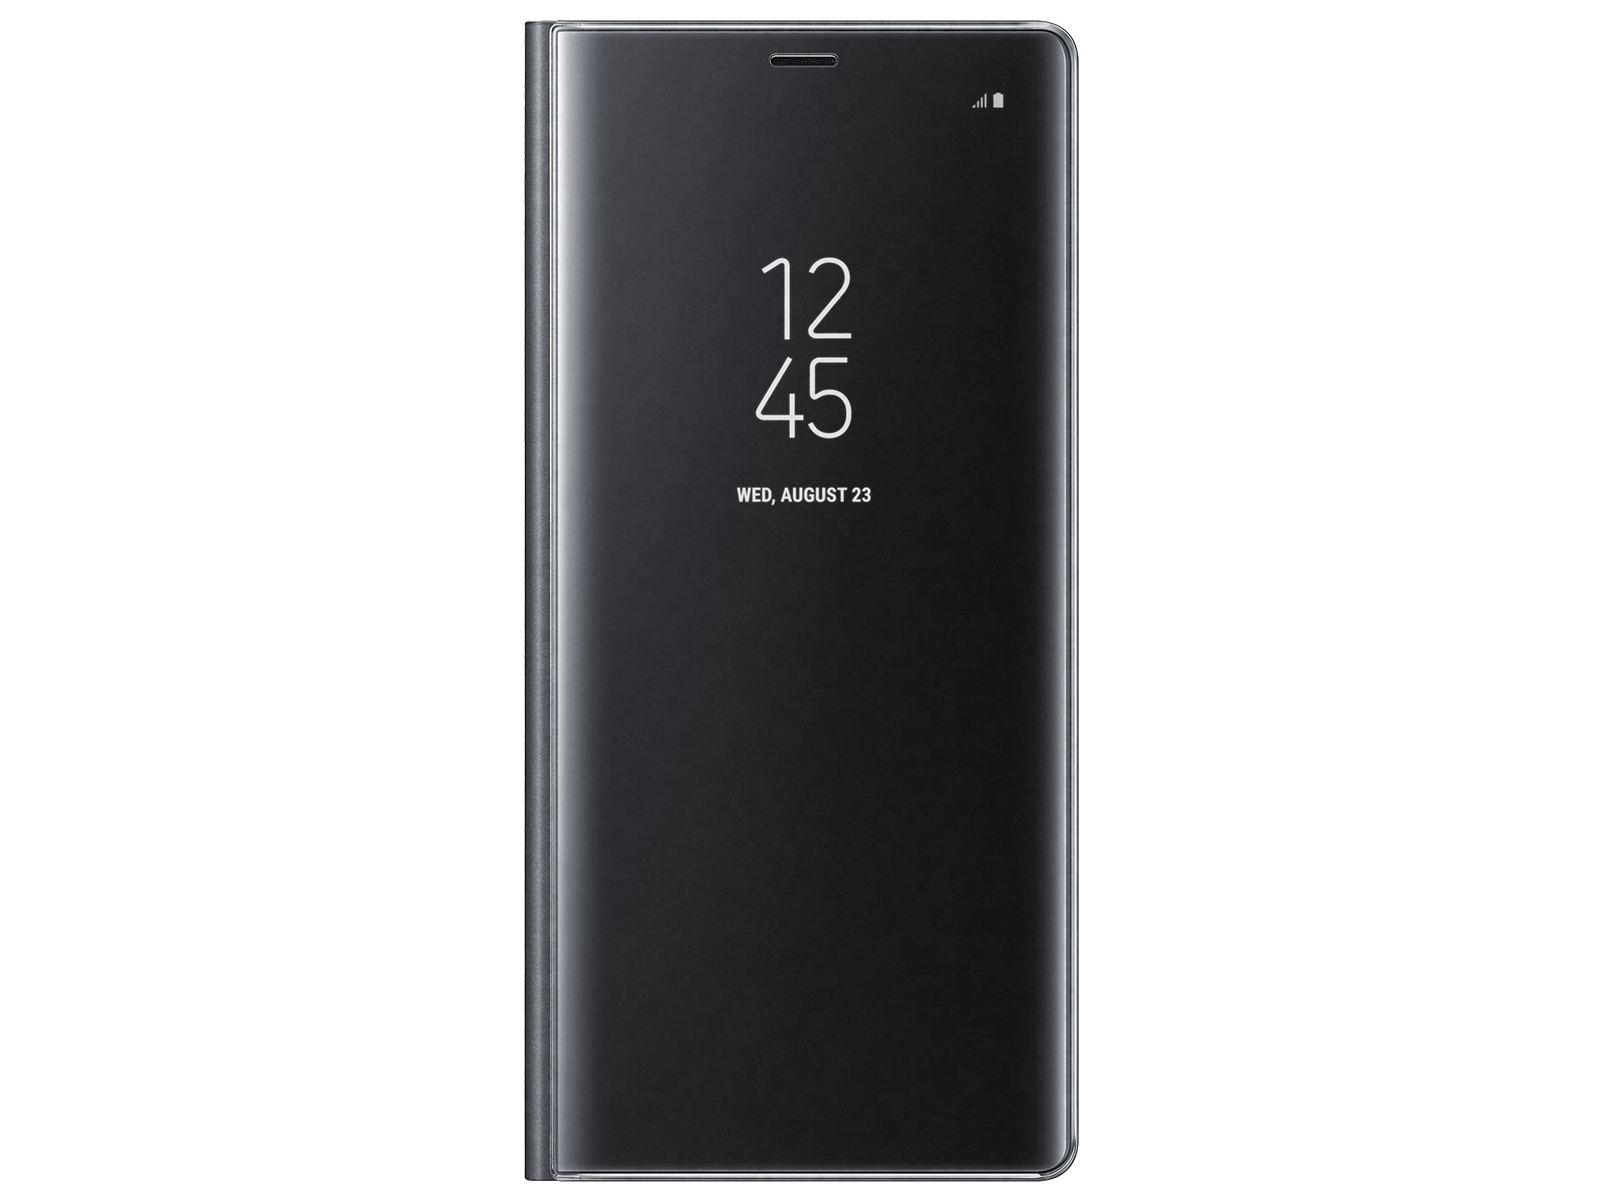 new product ff2d0 b21be Galaxy Note8 S-View Flip Cover, Black Mobile Accessories - EF-ZN950CBEGUS |  Samsung US